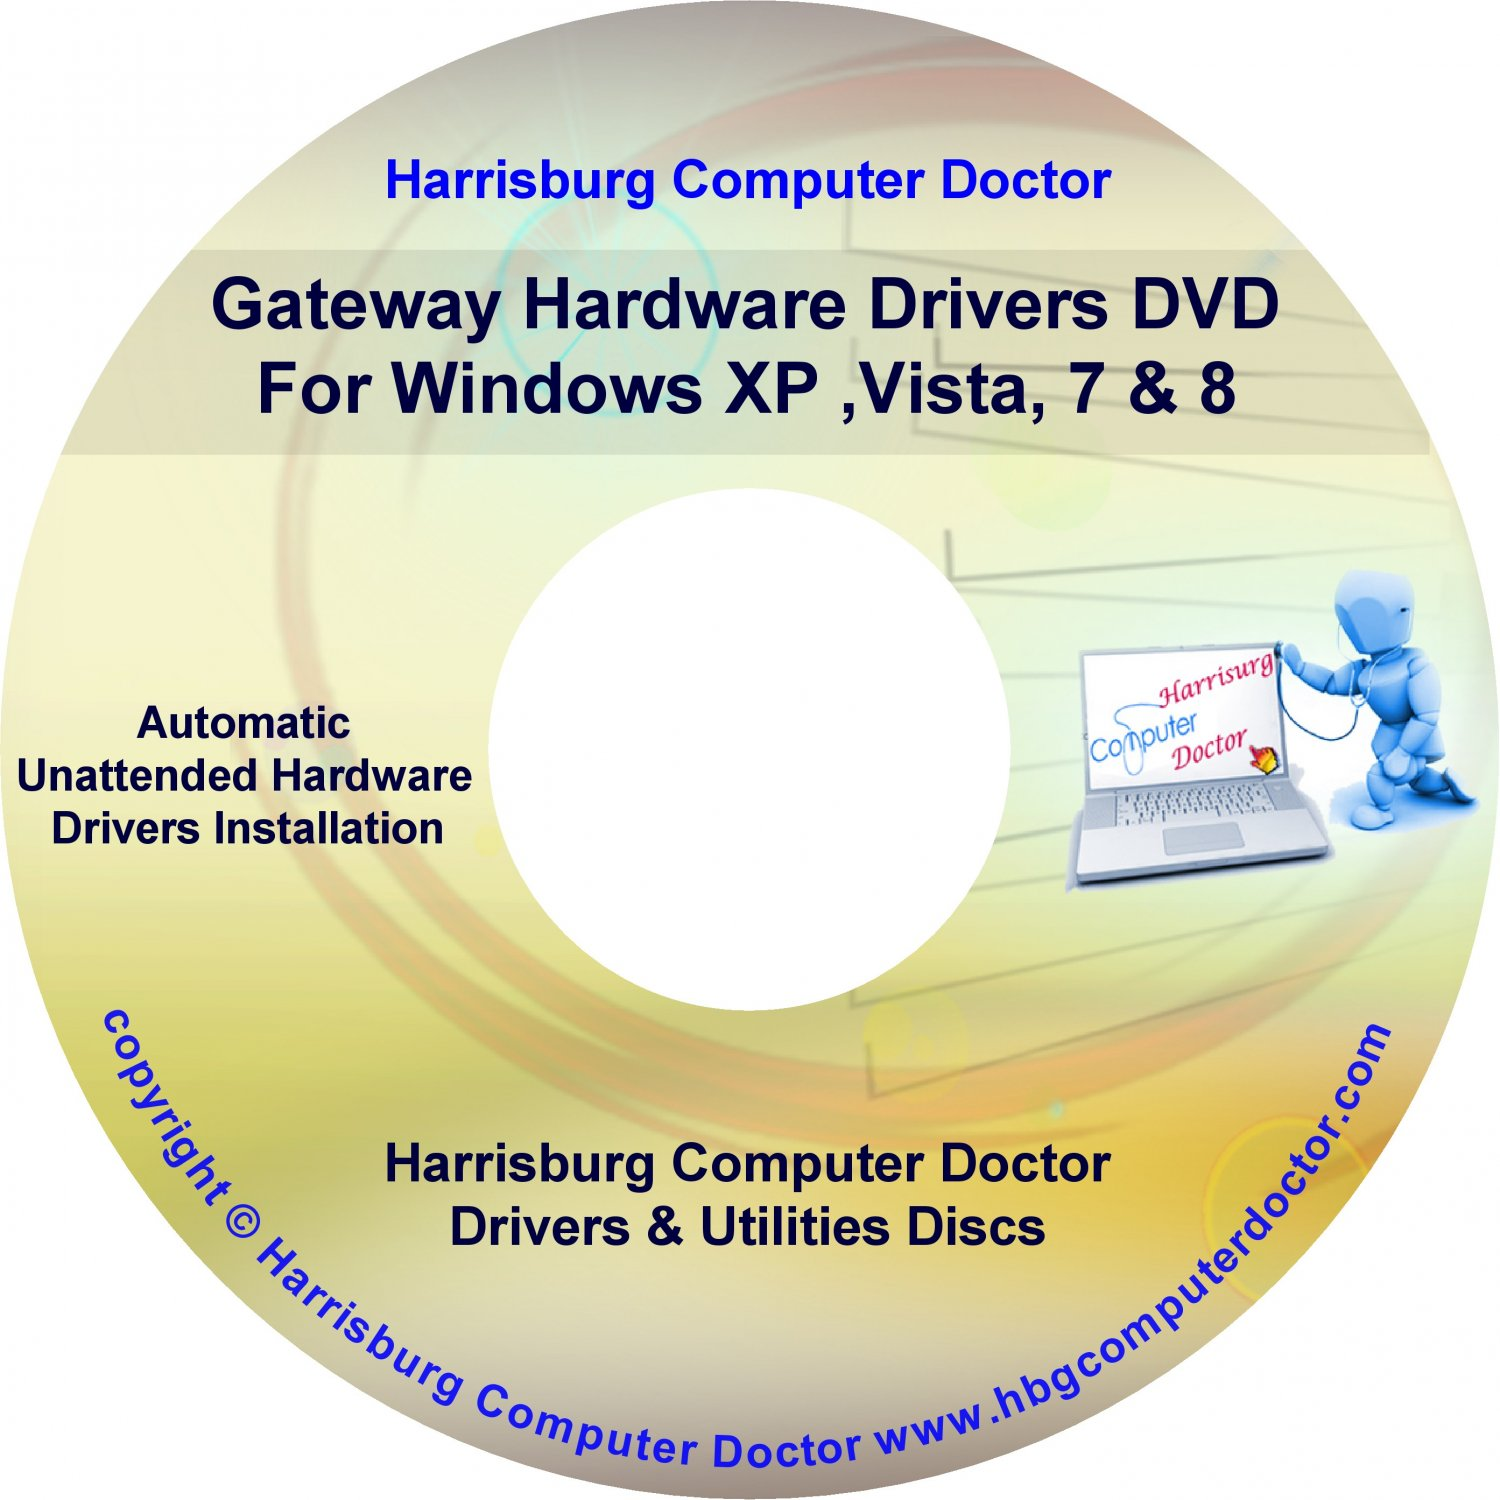 Gateway 4526MX Drivers DVD For Windows, XP, Vista, 7 & 8